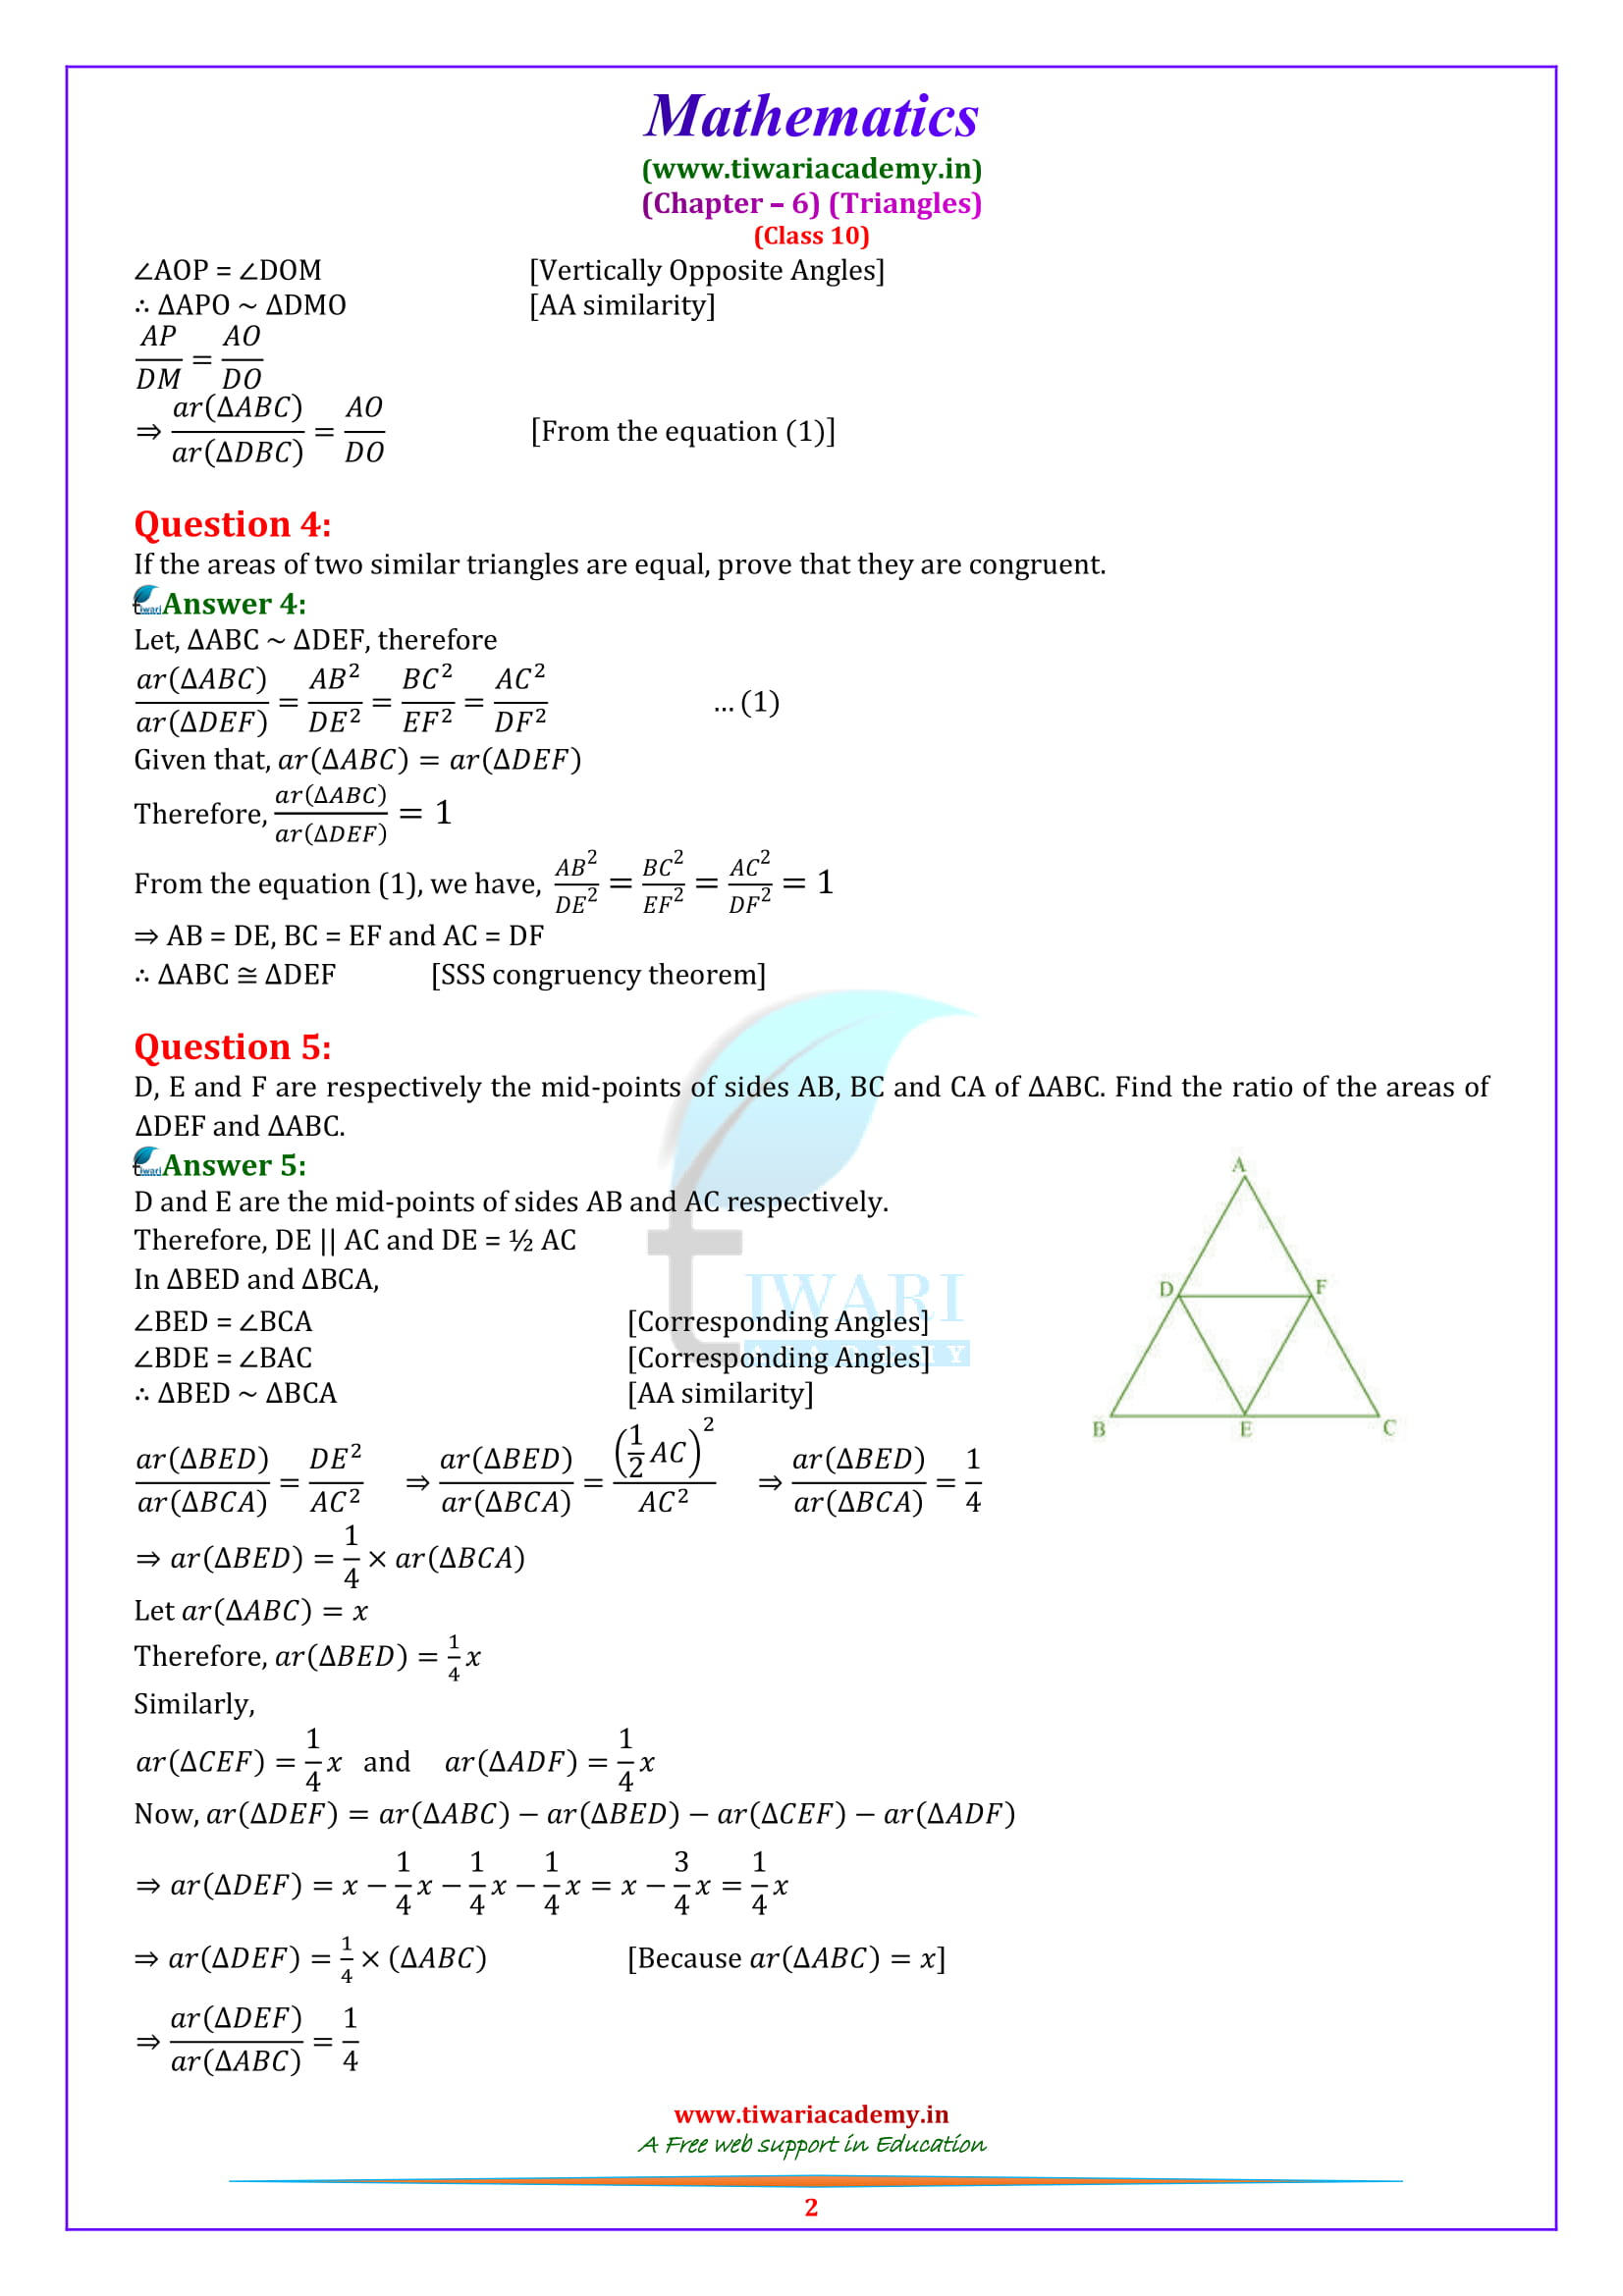 10 Maths Exercise 6.4 solutions updated for 2018-19.